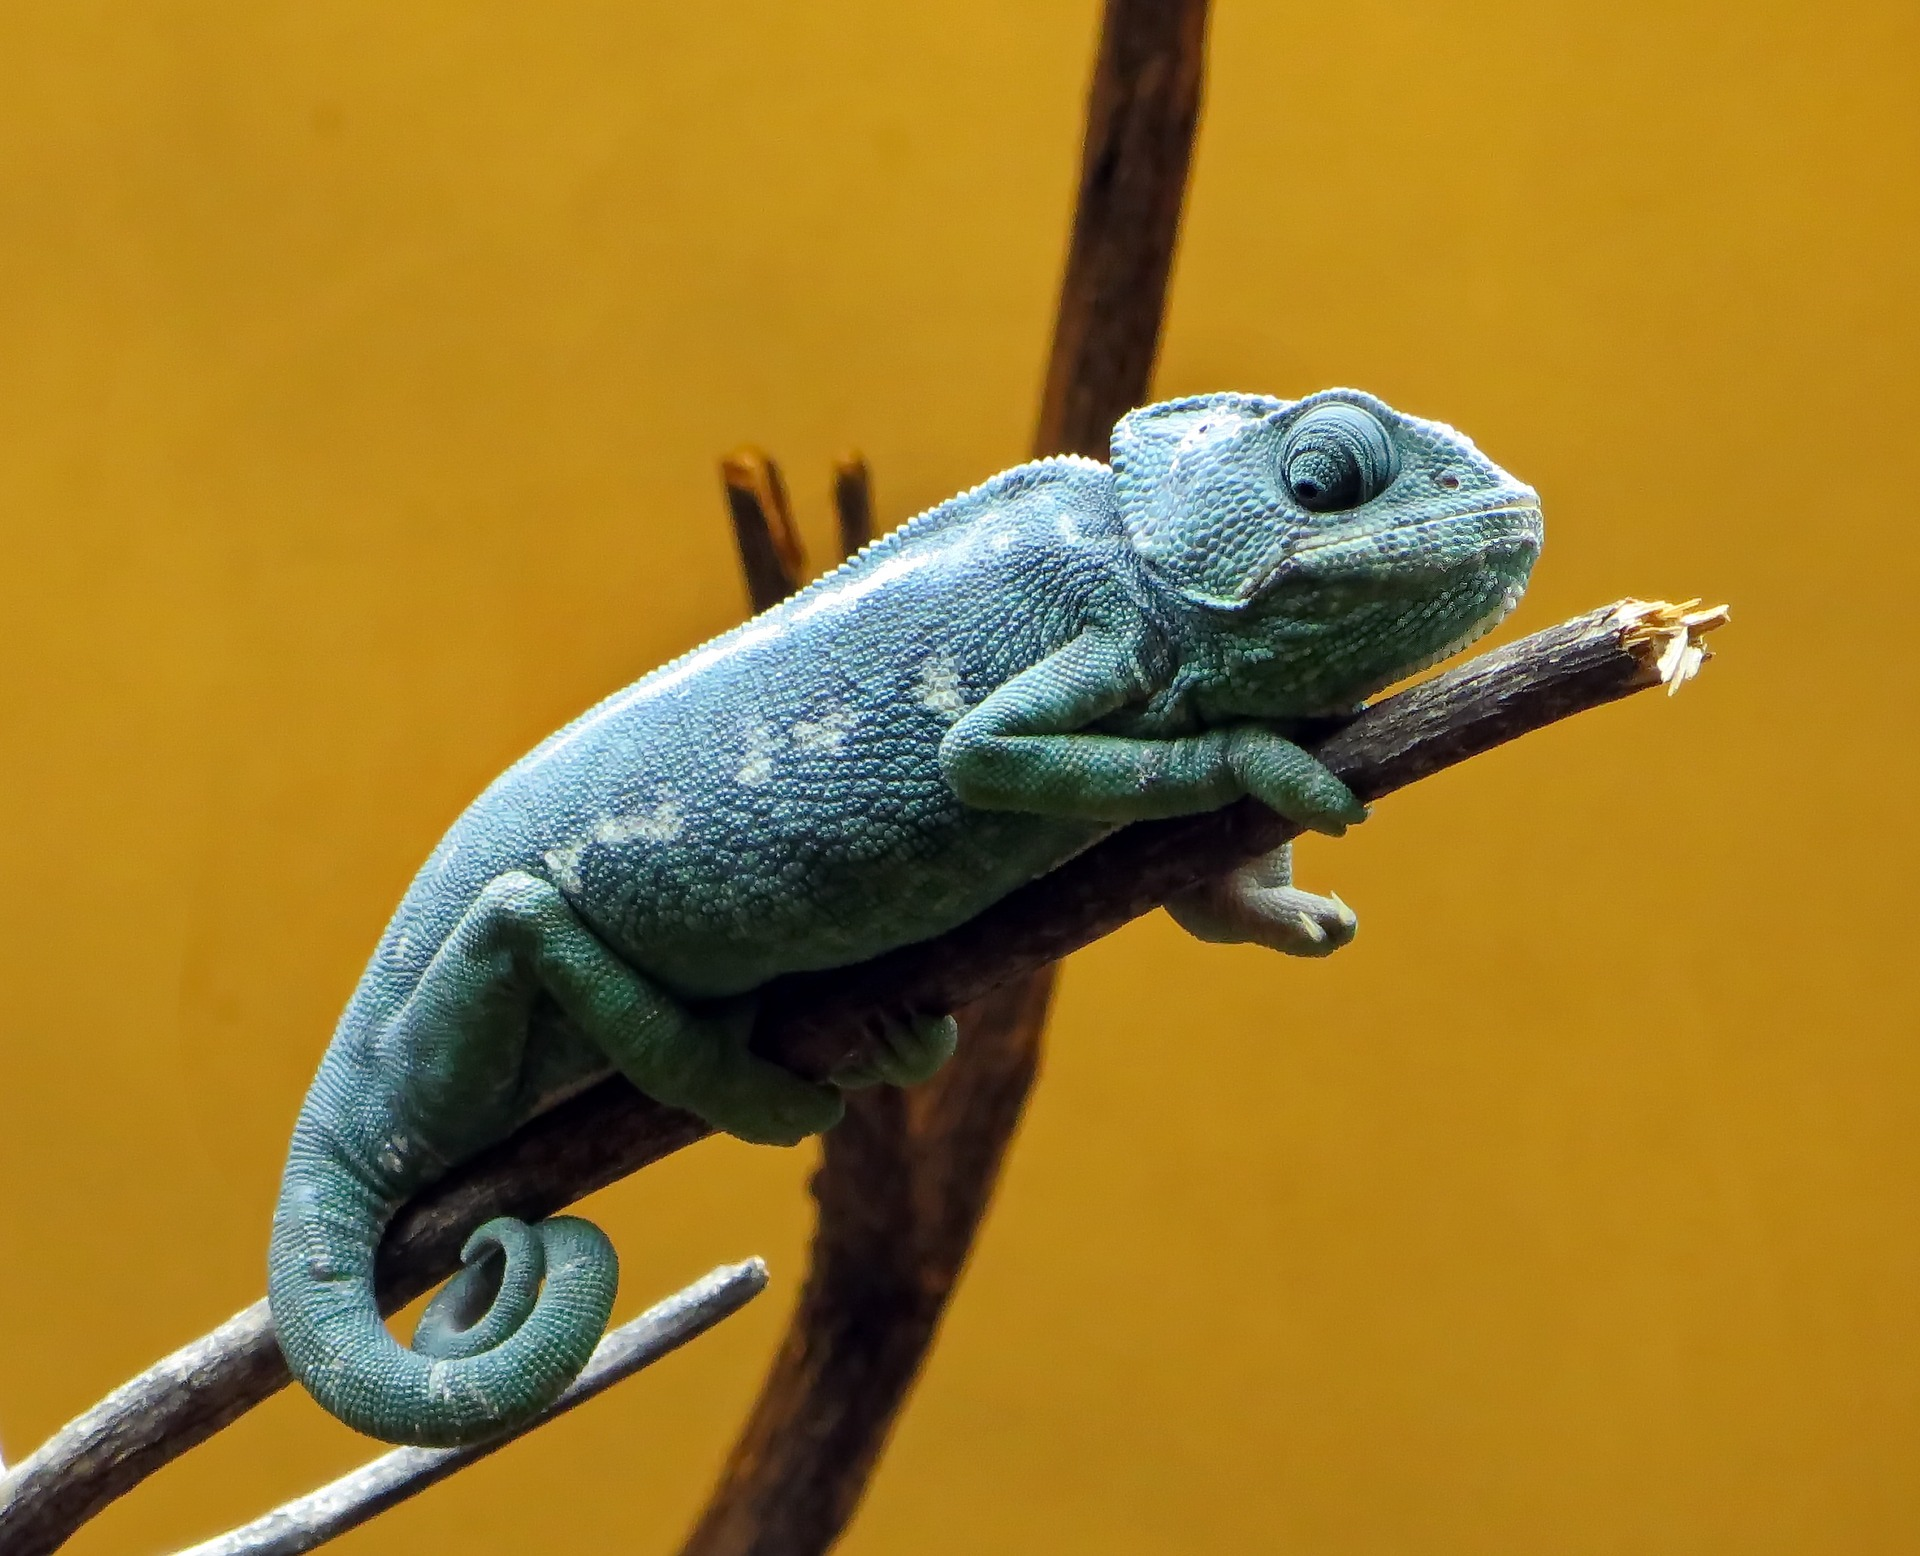 Awesome little chameleon dude knows the deal.